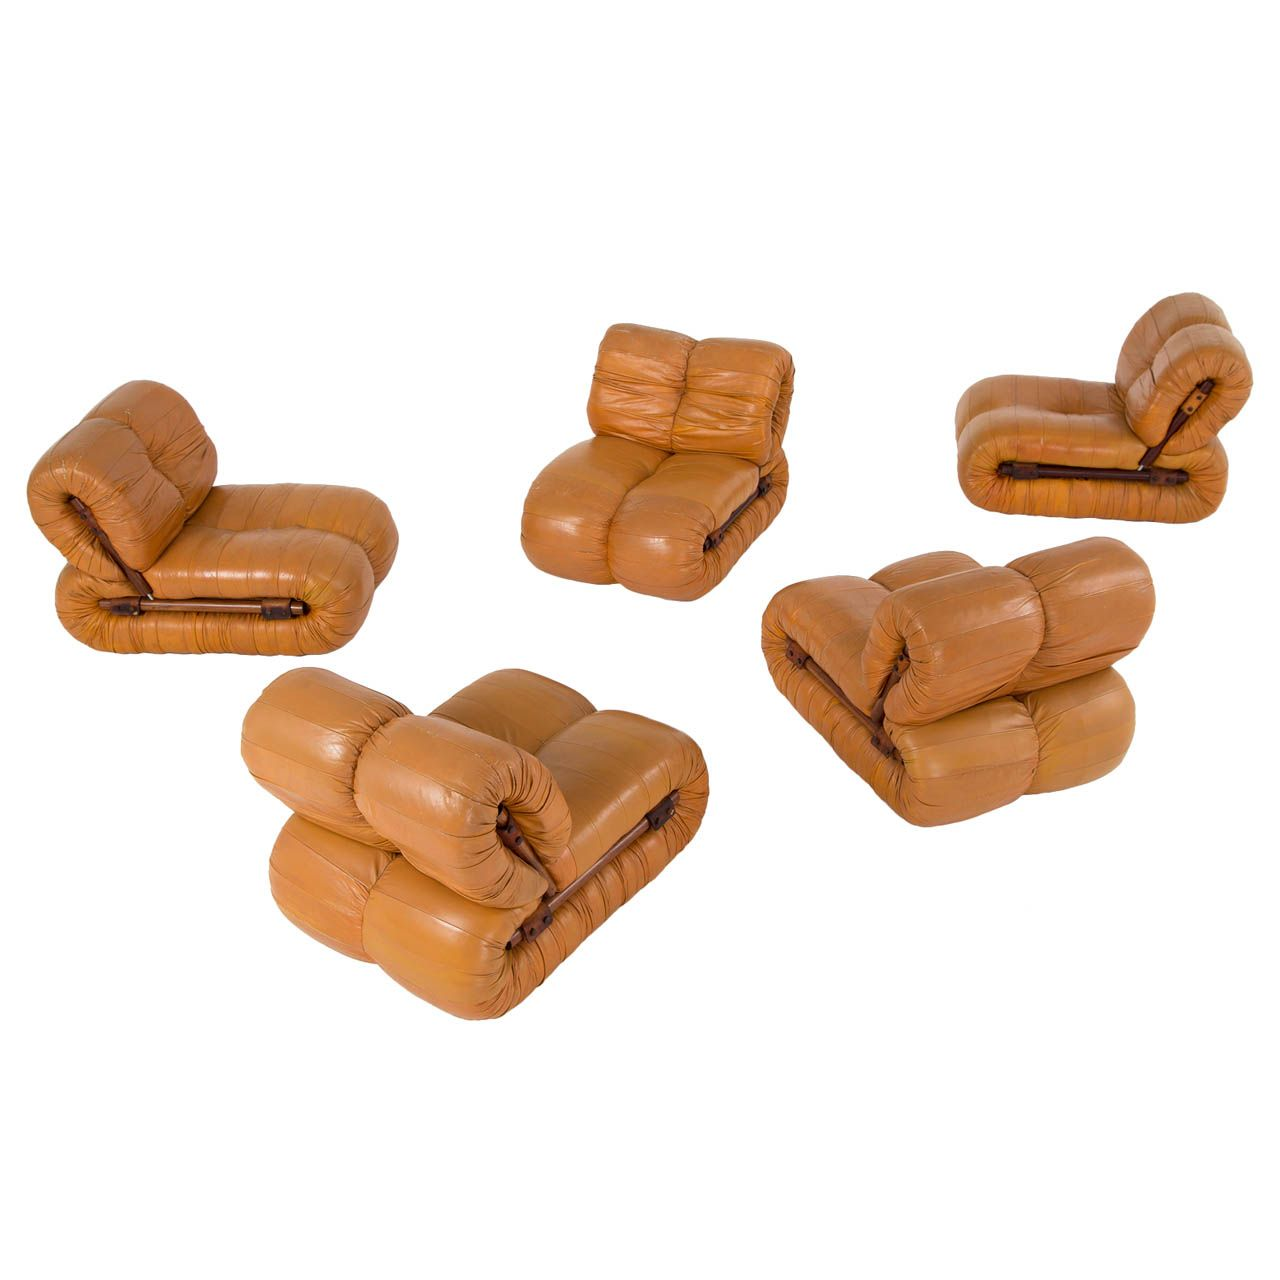 Rare Modular Seating Group By Percival Lafer Rosewood And